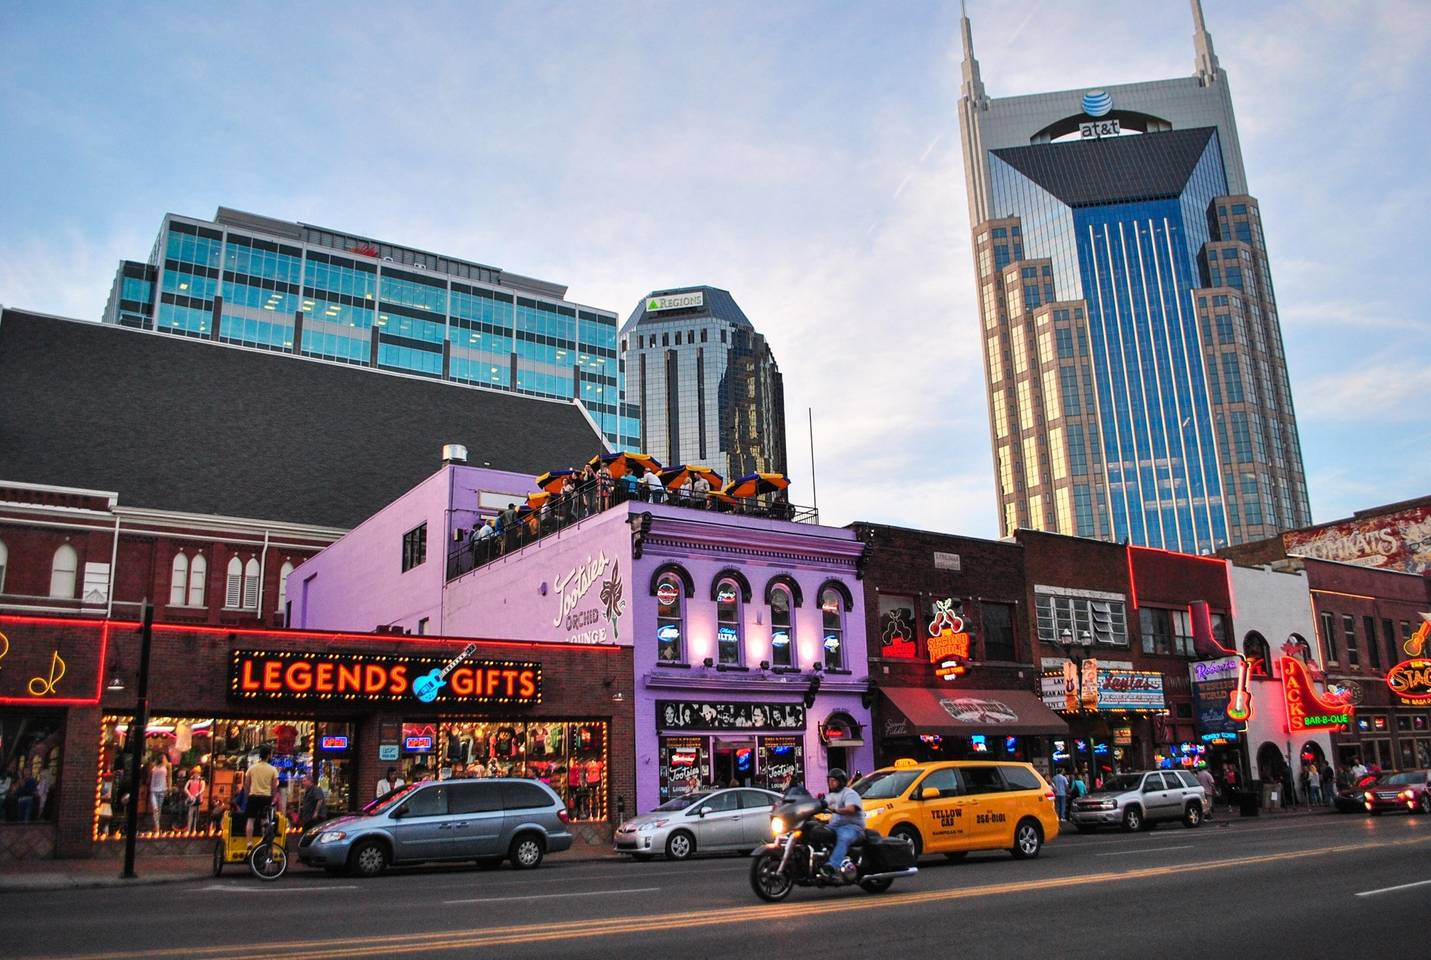 """broadway - """"Willie Nelson, Kris Kristofferson, Gretchen Wilson, Dierks Bentley, and other stars began their careers on this amazing honky tonk highway. MEANING the person you see singing on the stage in Music City might be the next big thing. Come party with the rest of the world on this one-of-a-kind strip!"""""""